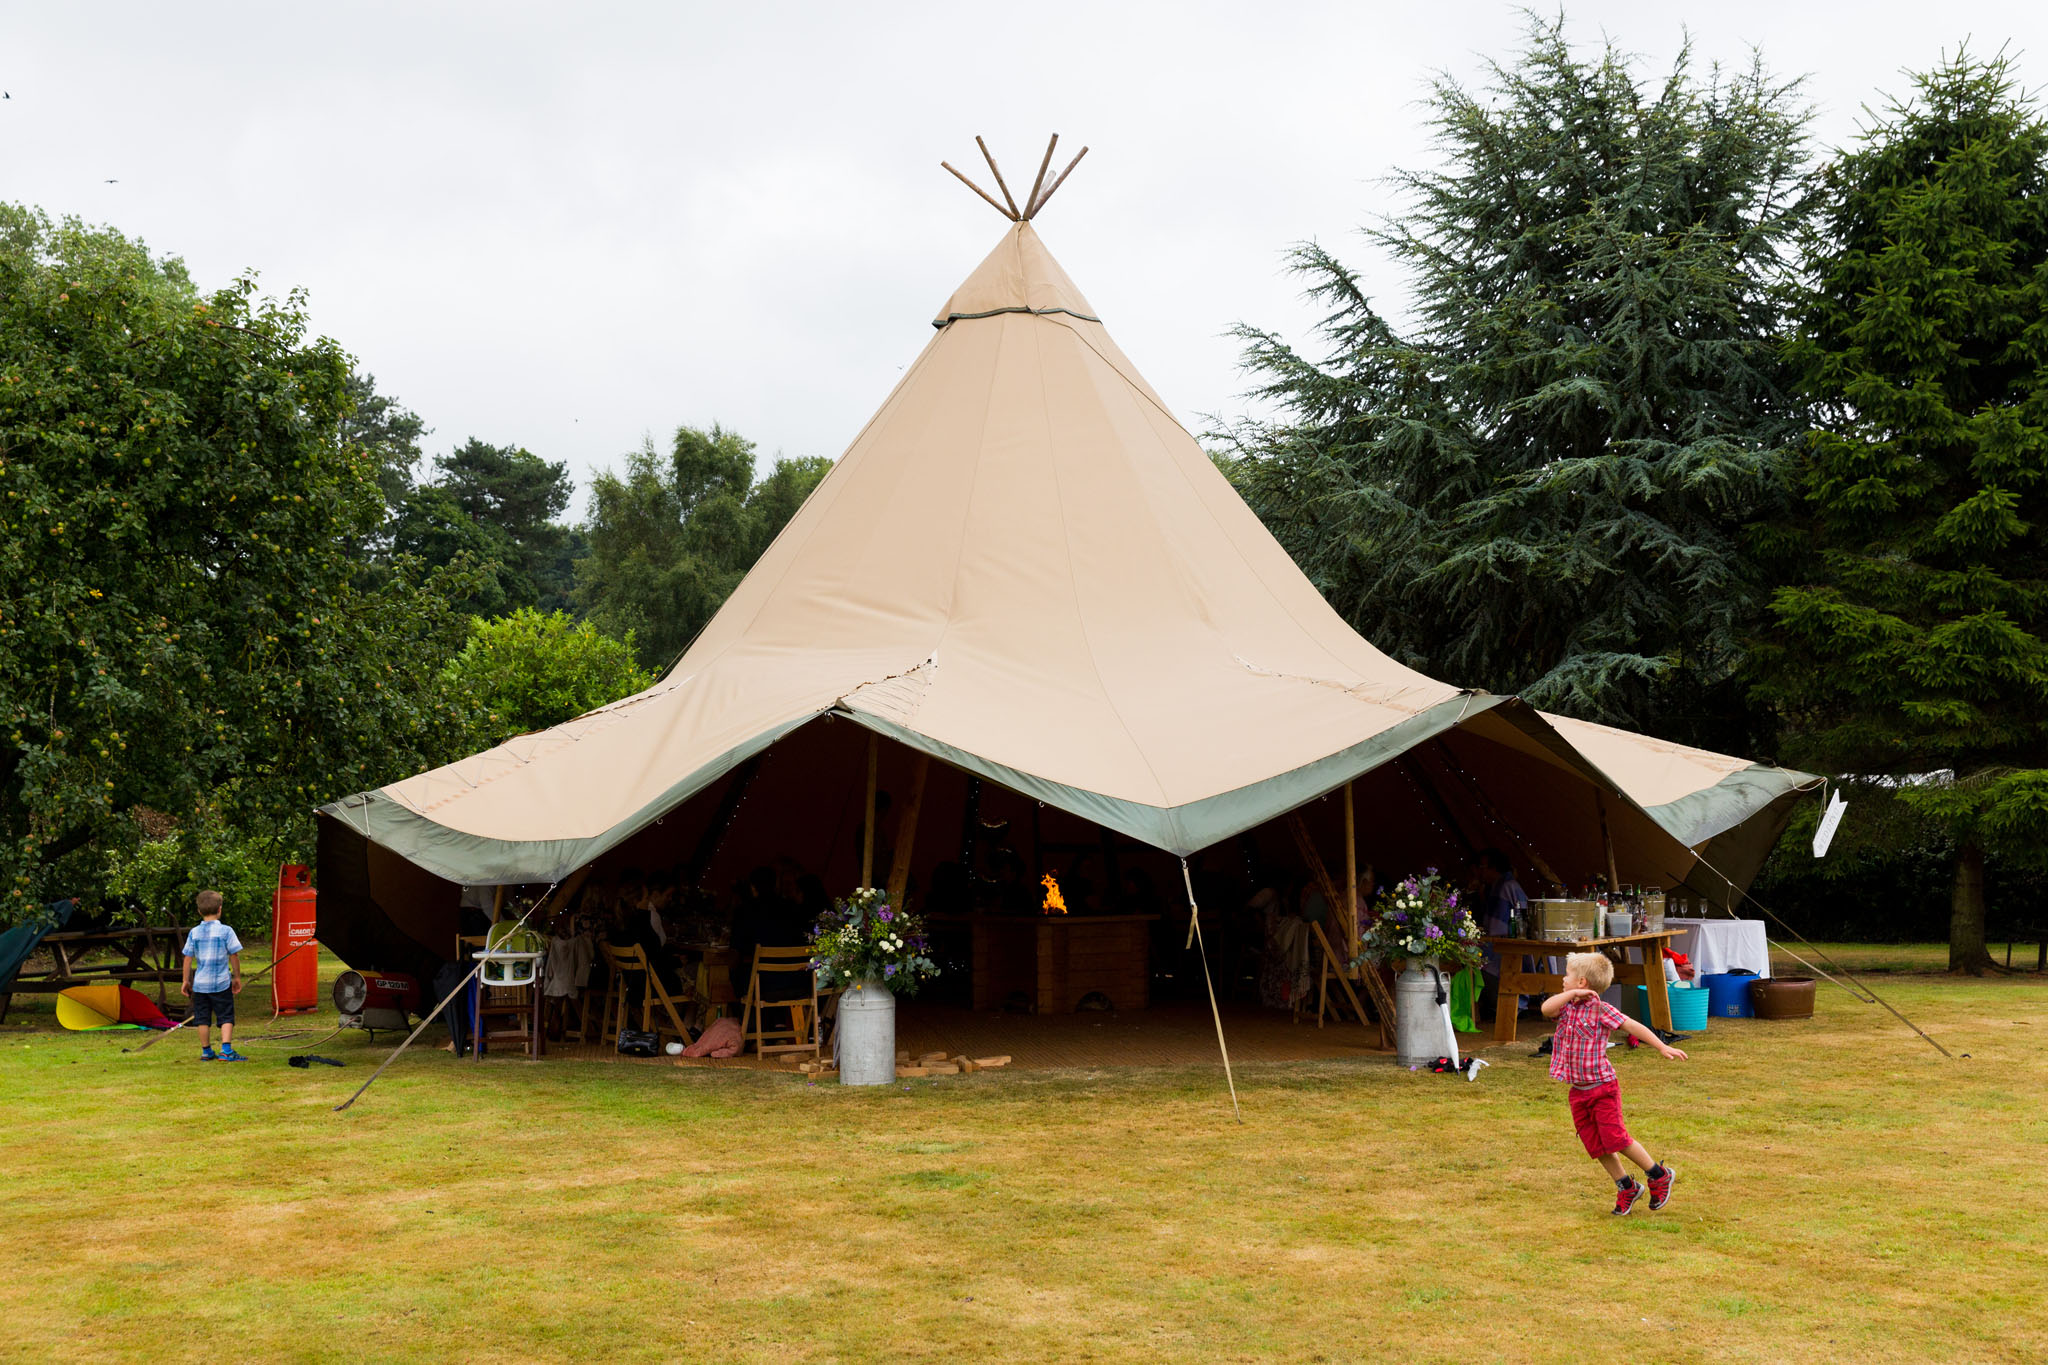 A family celebration in a teepee in Crewe Green in Cheshire